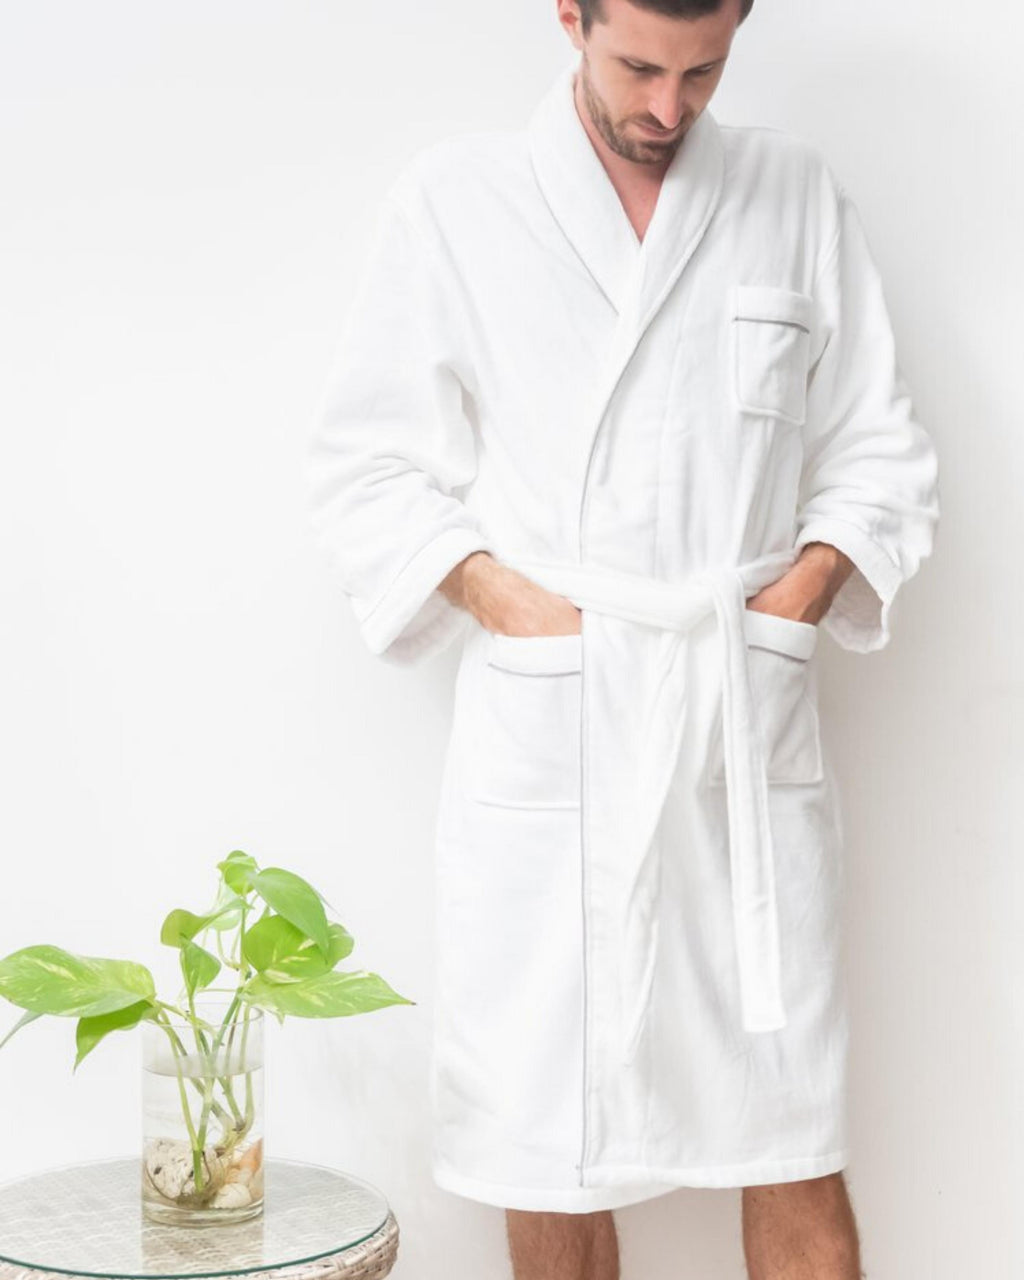 Classic Spa Bathrobe for Men - Grey (option to personalize!)